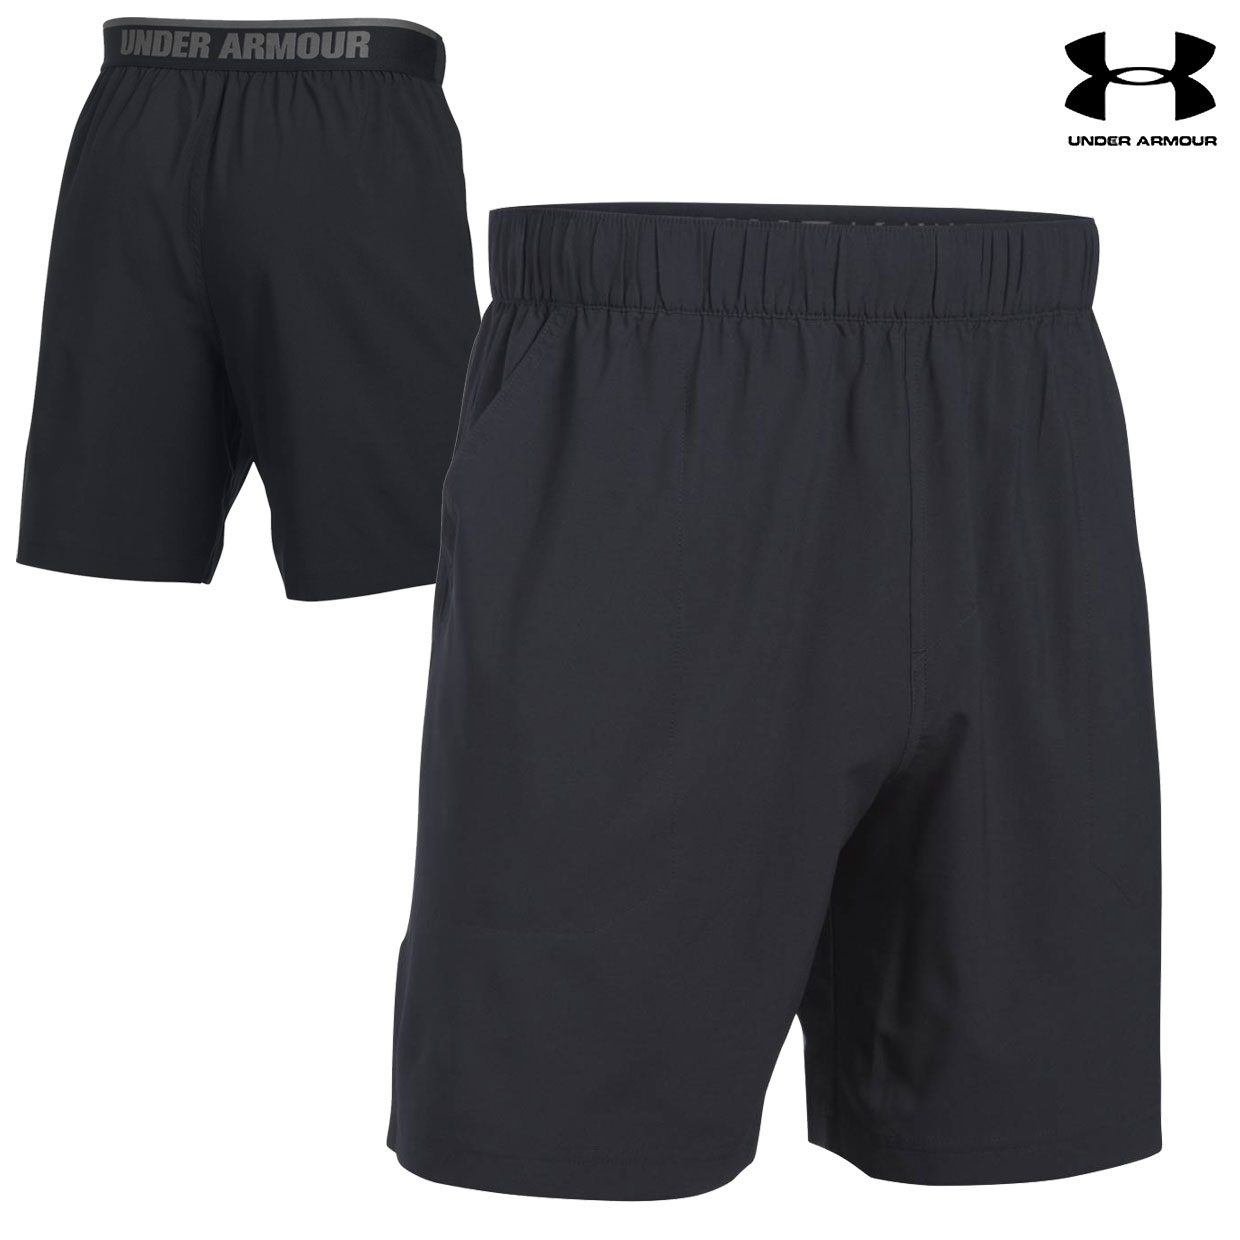 Under Armour Coastal Shorts (M)- Black